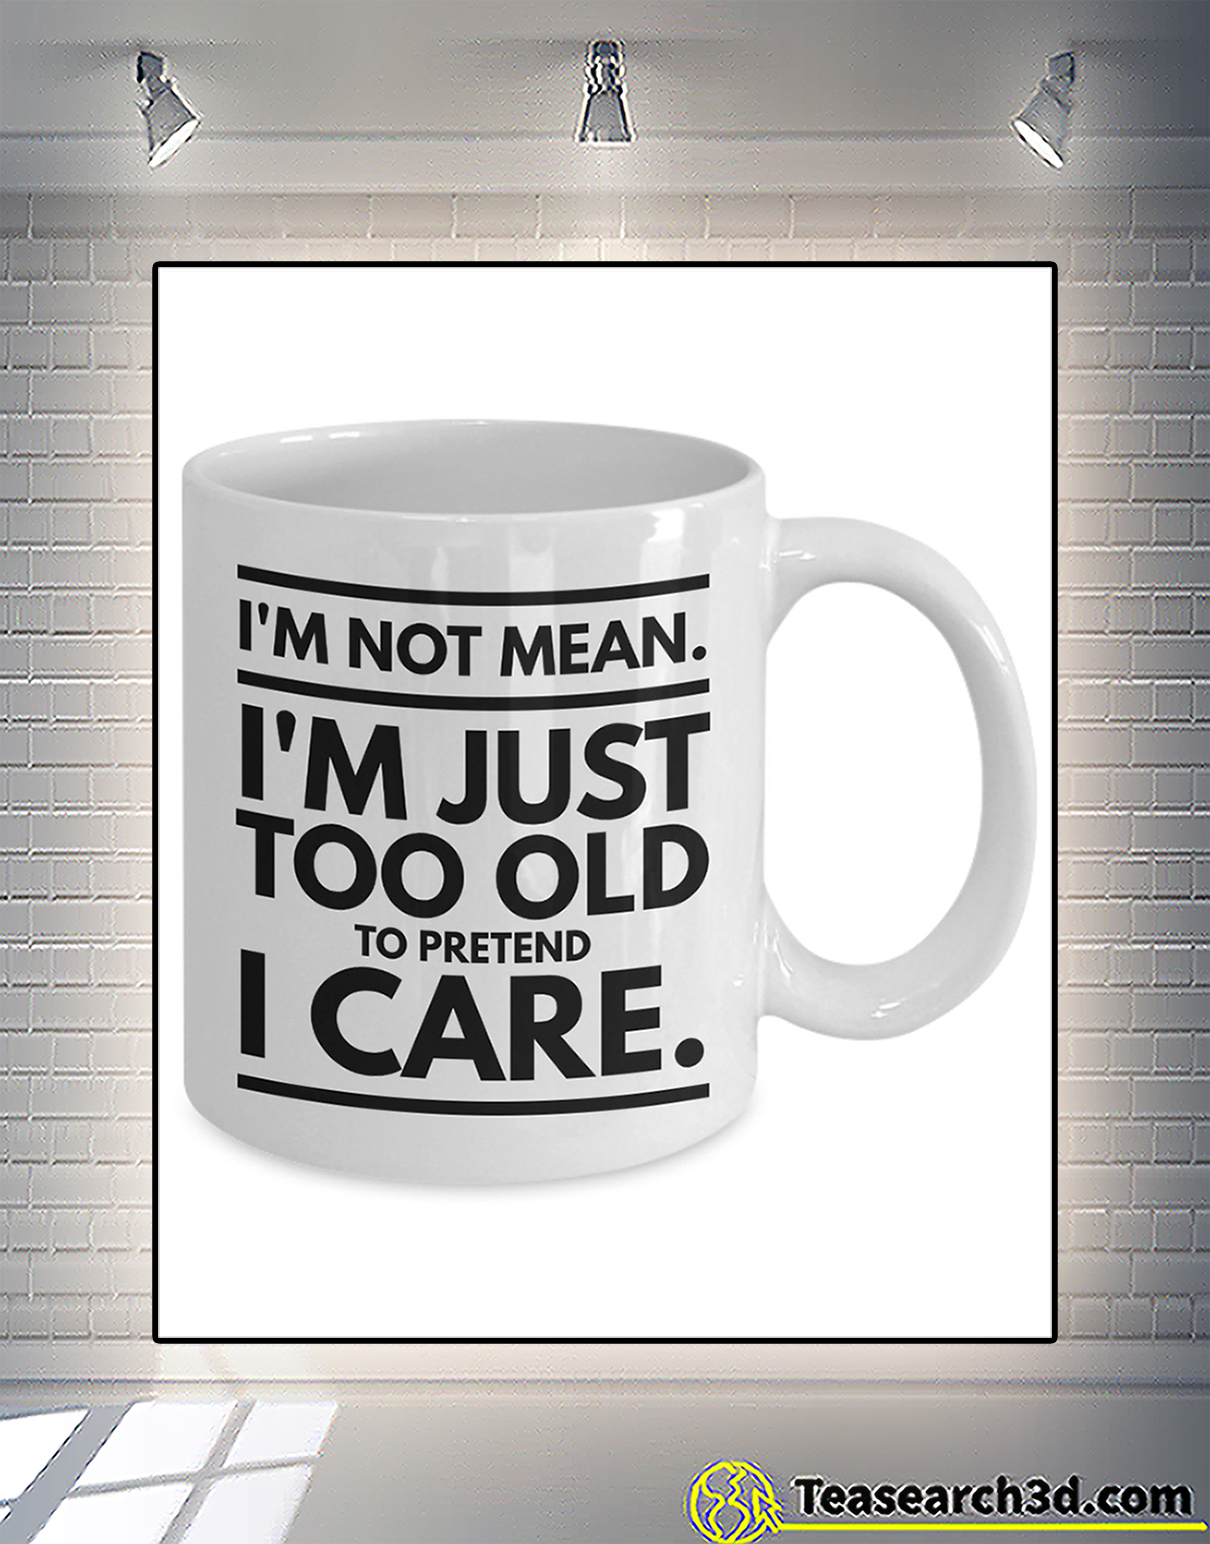 I'm not mean I'm just too old to pretend I care mug 2